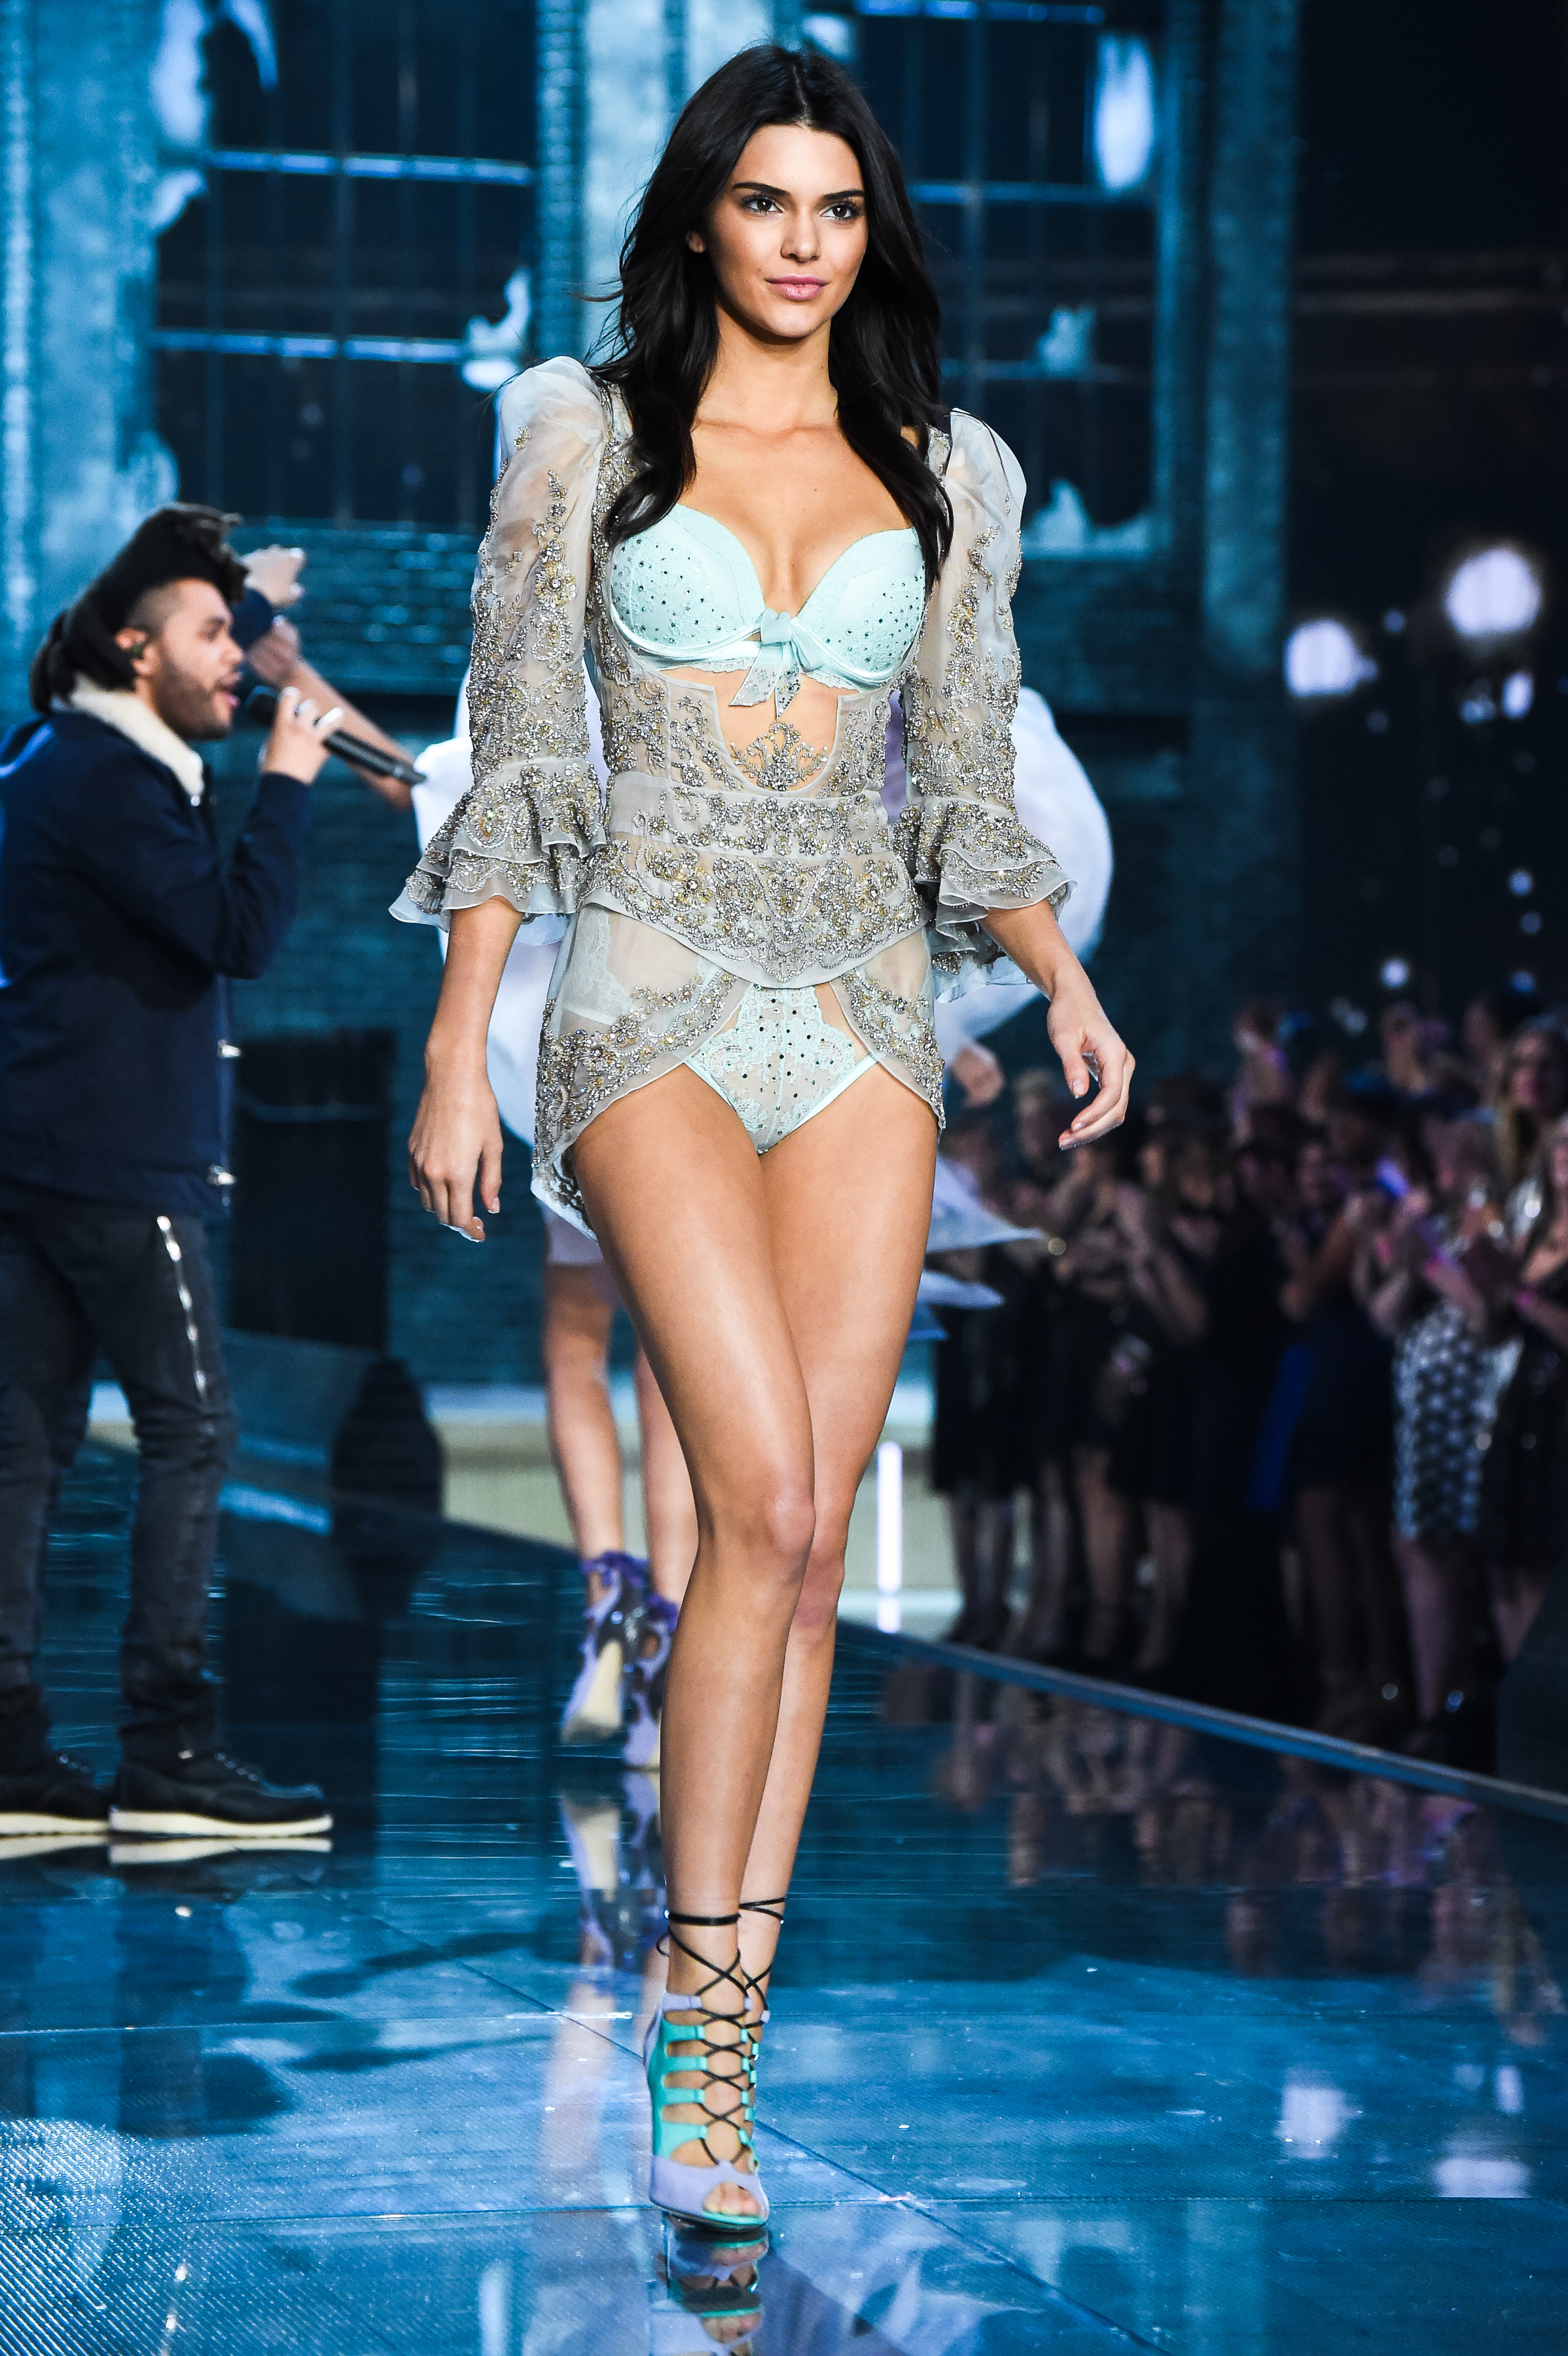 Victorias Secret Designer Collection Bra and Matching Panty Organza Bodice Embroidered with Swarovski Crystals, Kendall Jenner